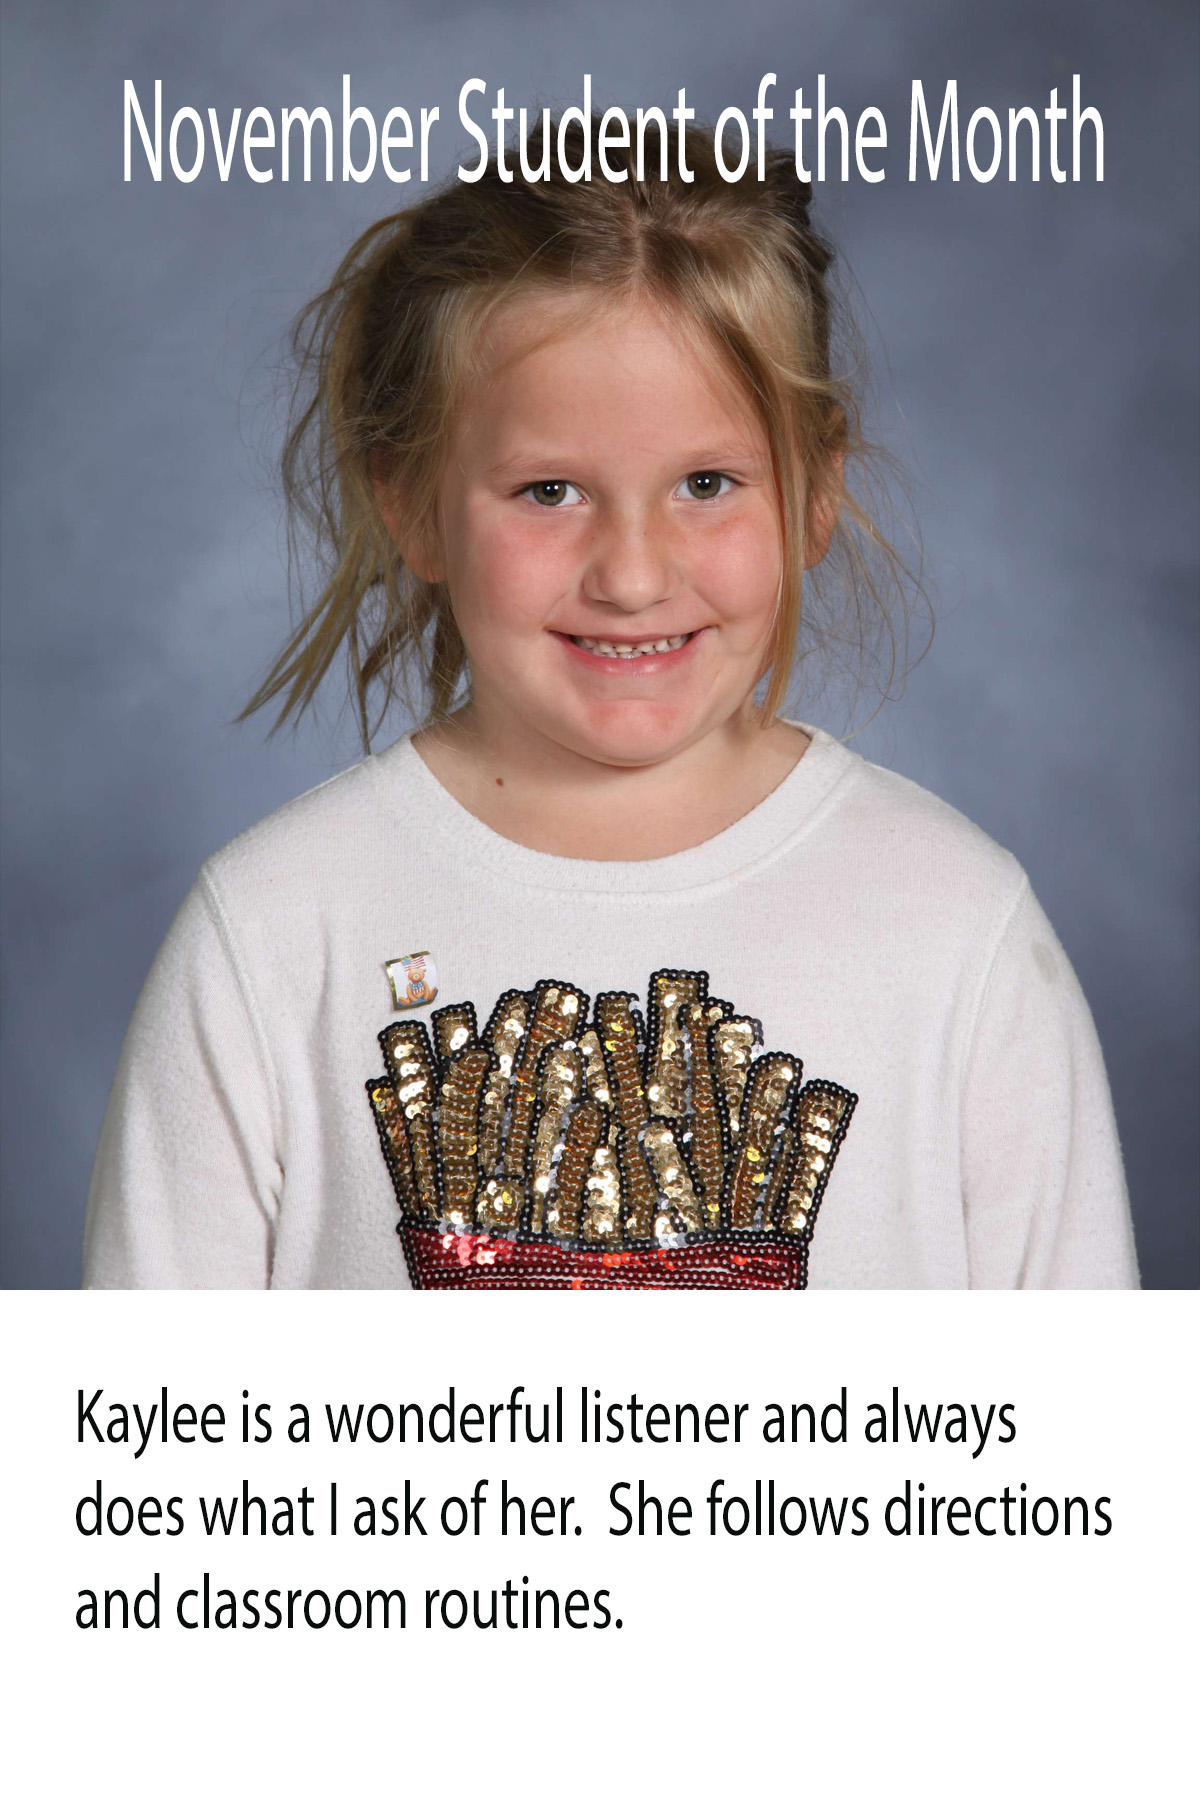 Mrs. Ewers' November Student of the Month